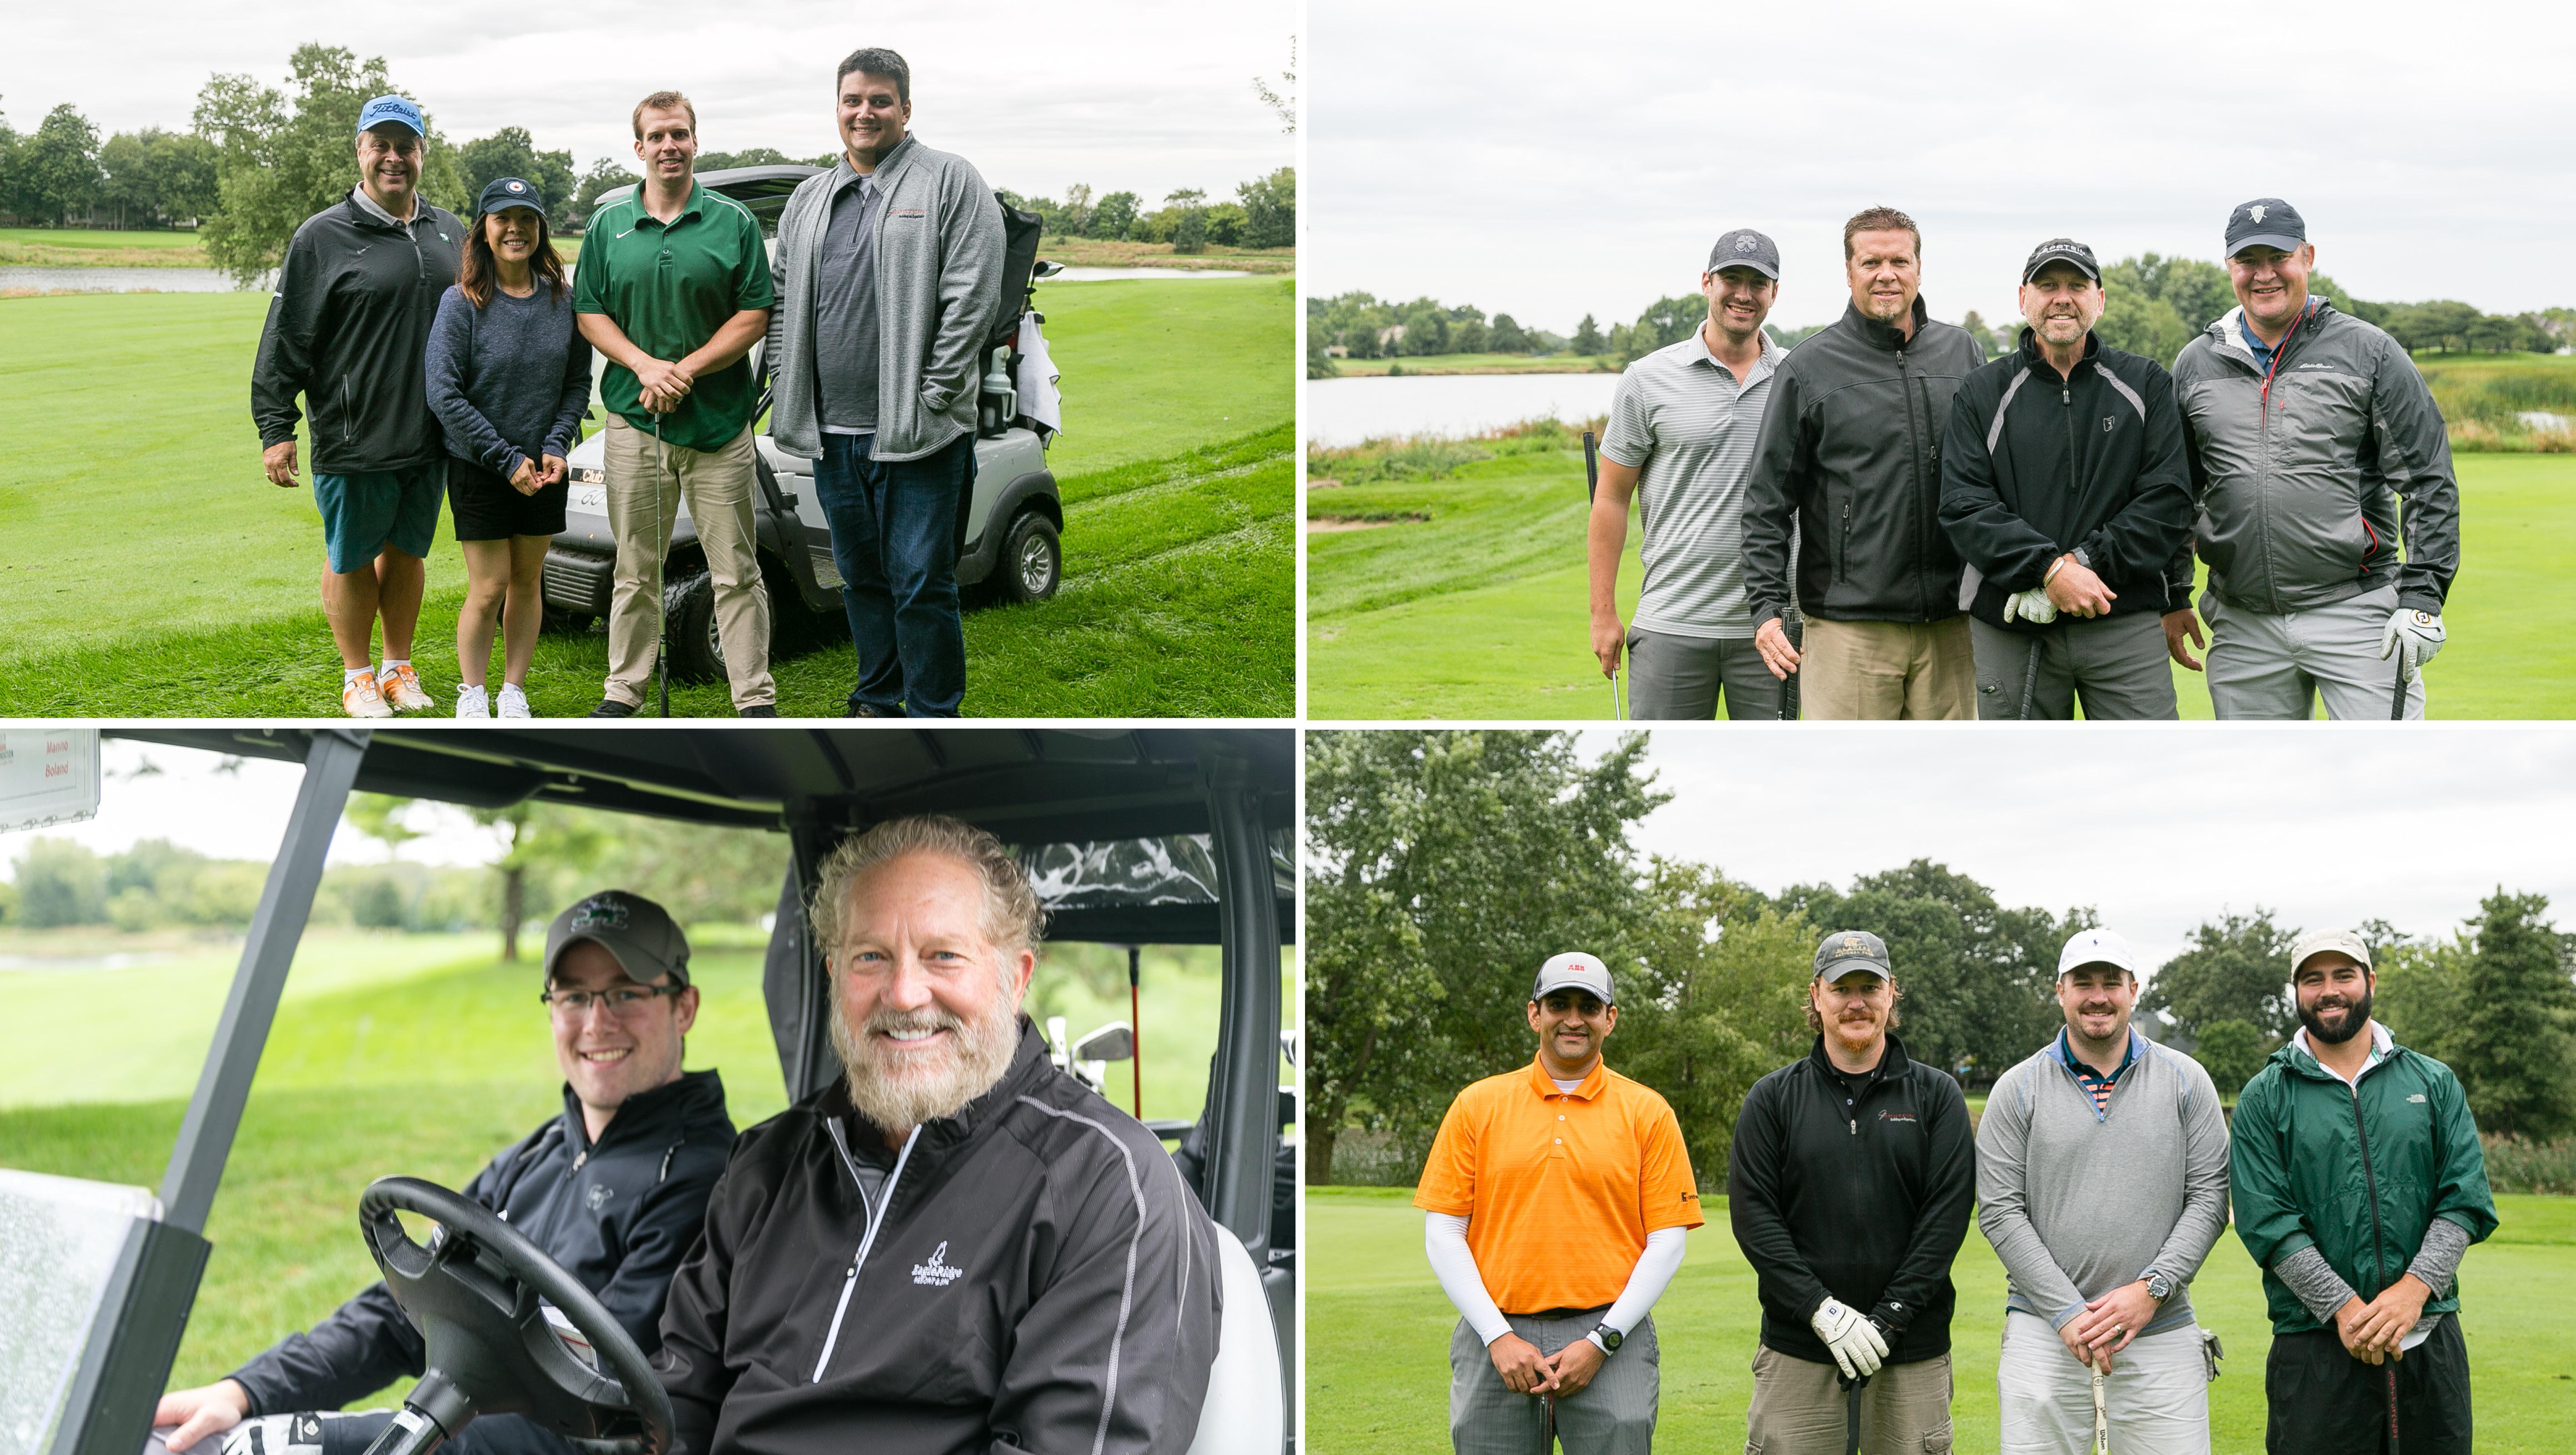 Golf-Outing-Collage-2.jpg?mtime=20180914